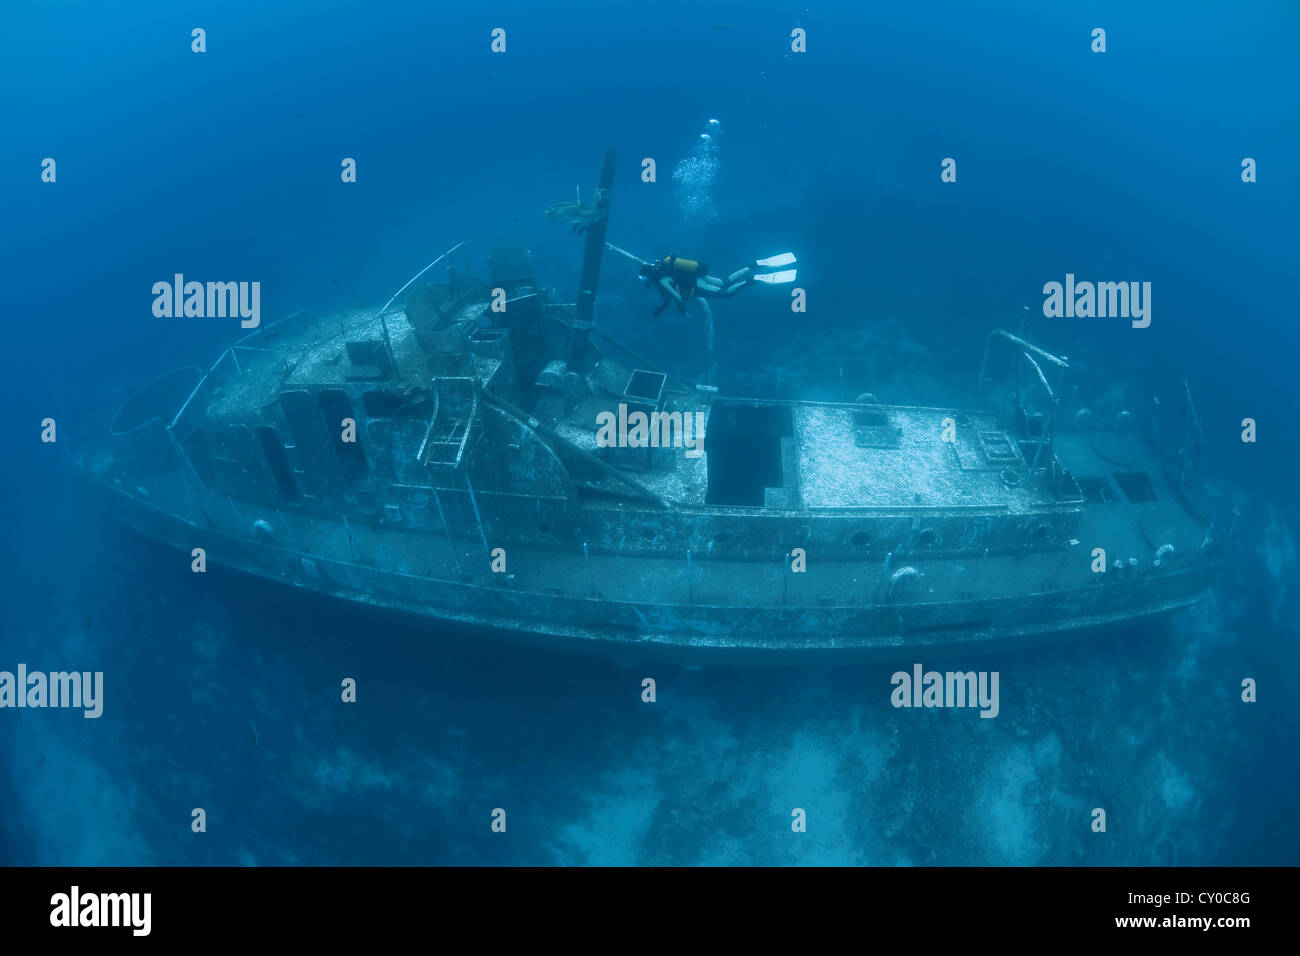 Coastguard Navy Ship TCG 115, wreck of a coastal patrol boat of the Turkish navy, was sunk to create an artificial - Stock Image